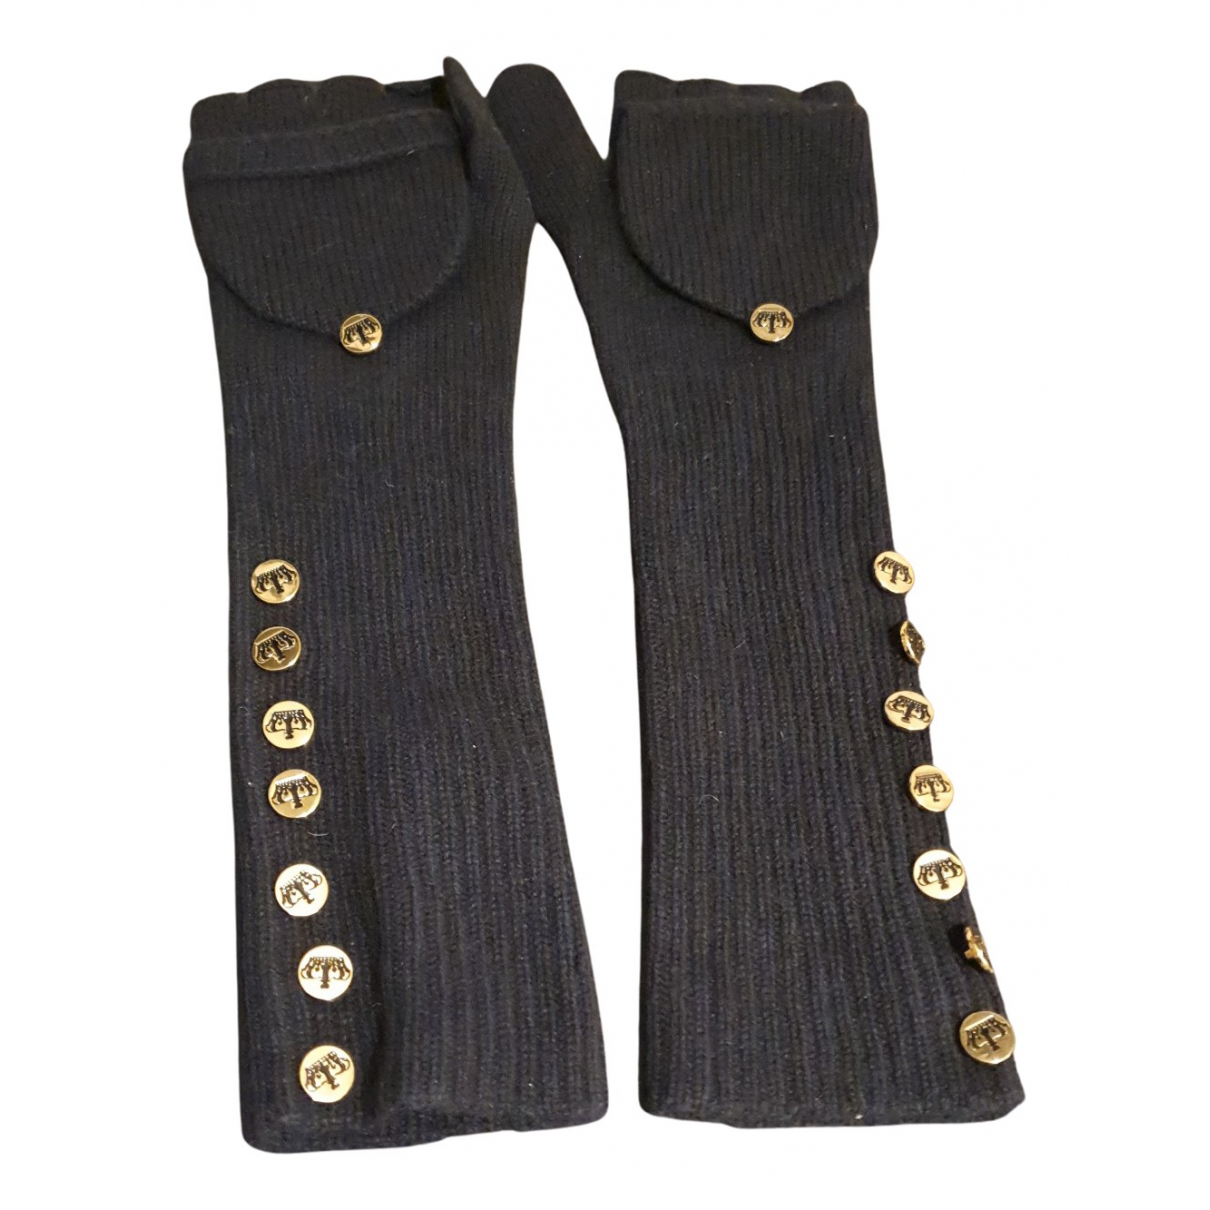 Juicy Couture N Black Wool Gloves for Women 15 cm